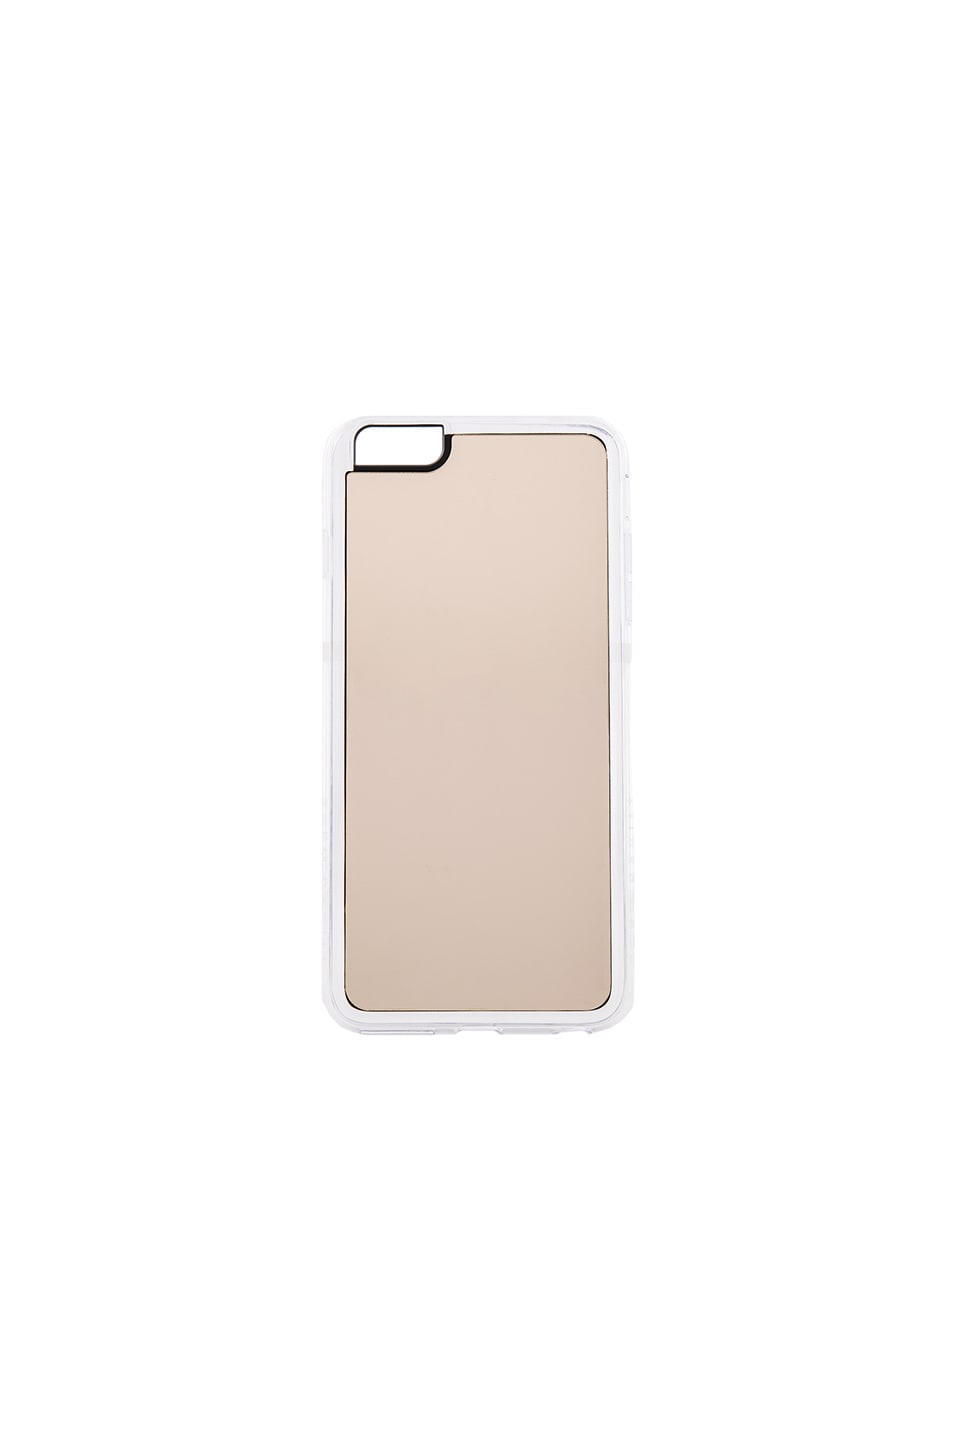 ZERO GRAVITY COQUE POUR IPHONE 6 / 6S PLUS